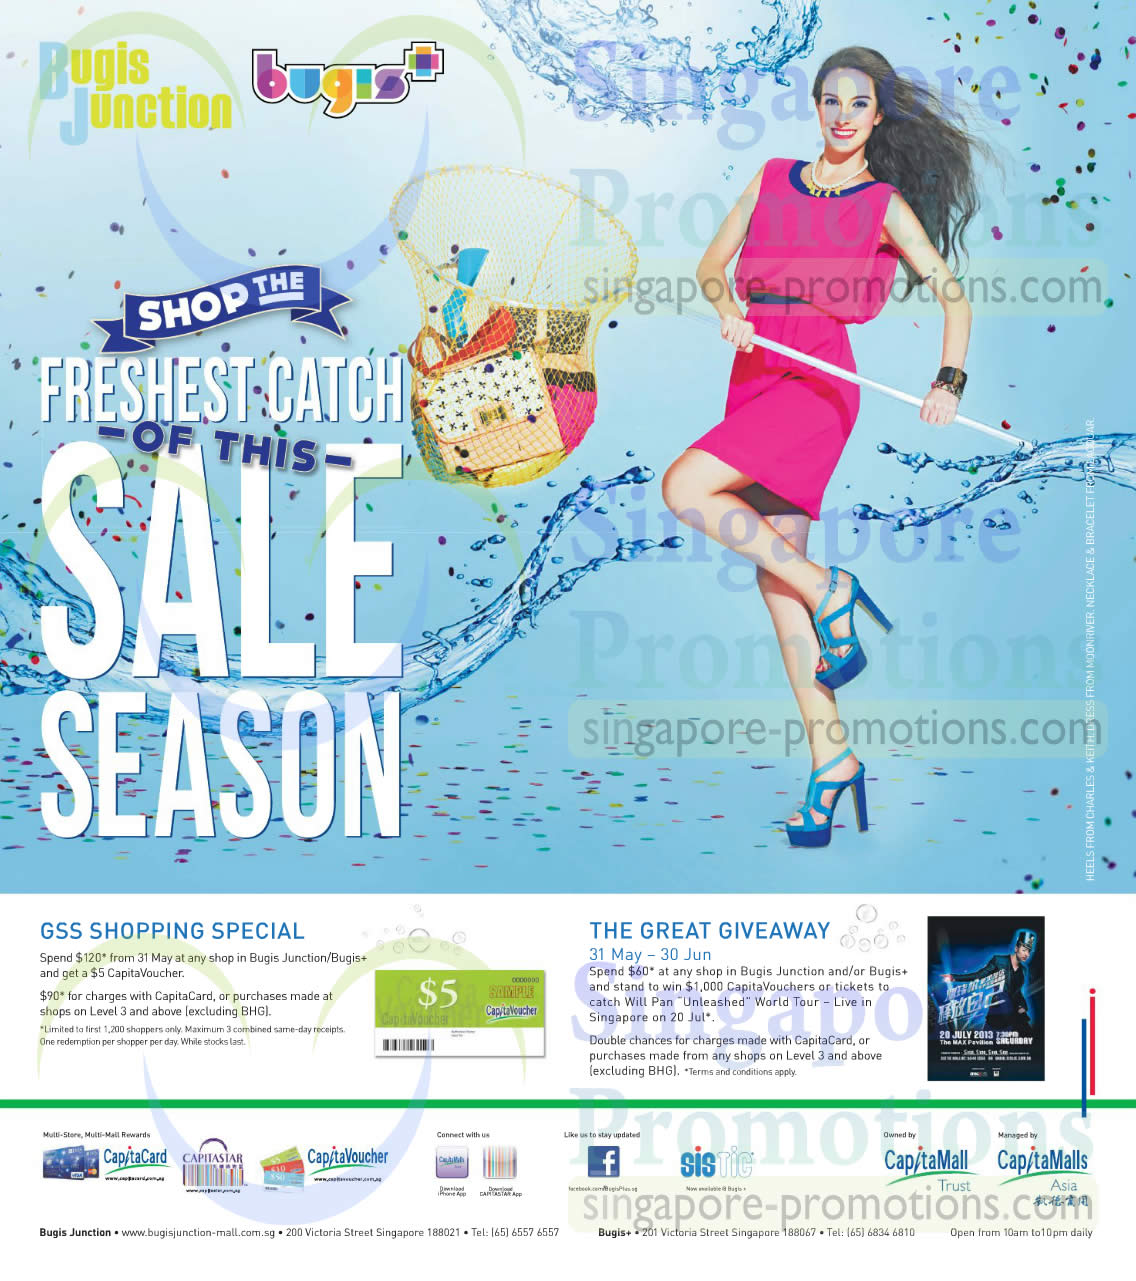 Bugis Junction GSS Shopping Special